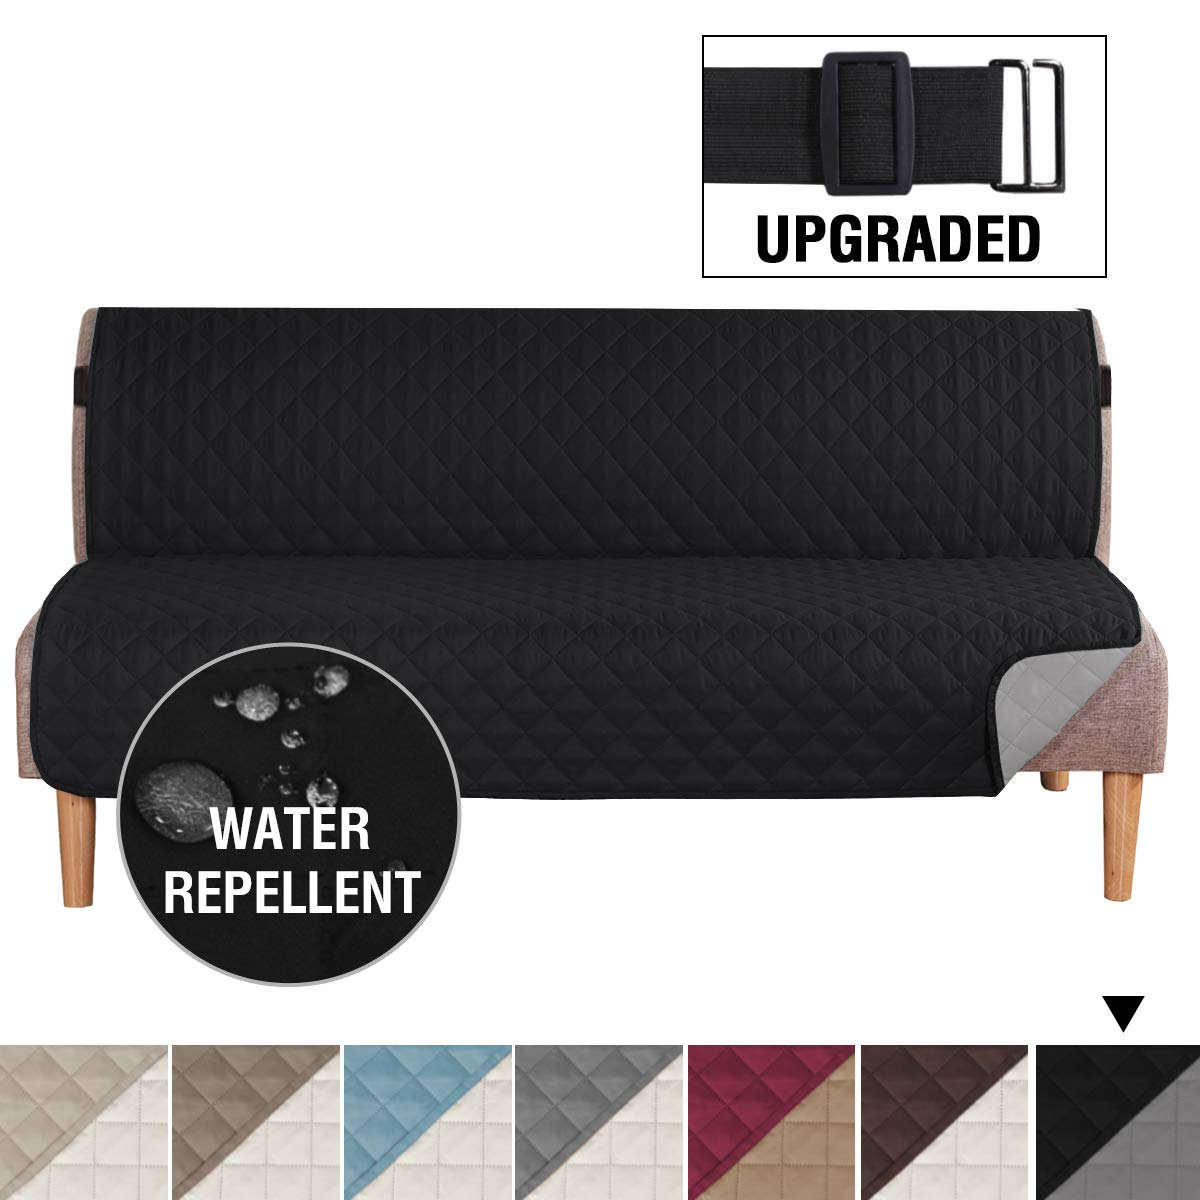 """H.VERSAILTEX Reversible Futon Slipcover Seat Width Up to 70"""" Washable Furniture Protector Water Repellent Futon Cover for Living Room 2"""" Elastic Strap Anti-Slip Futon Cover for Dogs Black/Grey"""